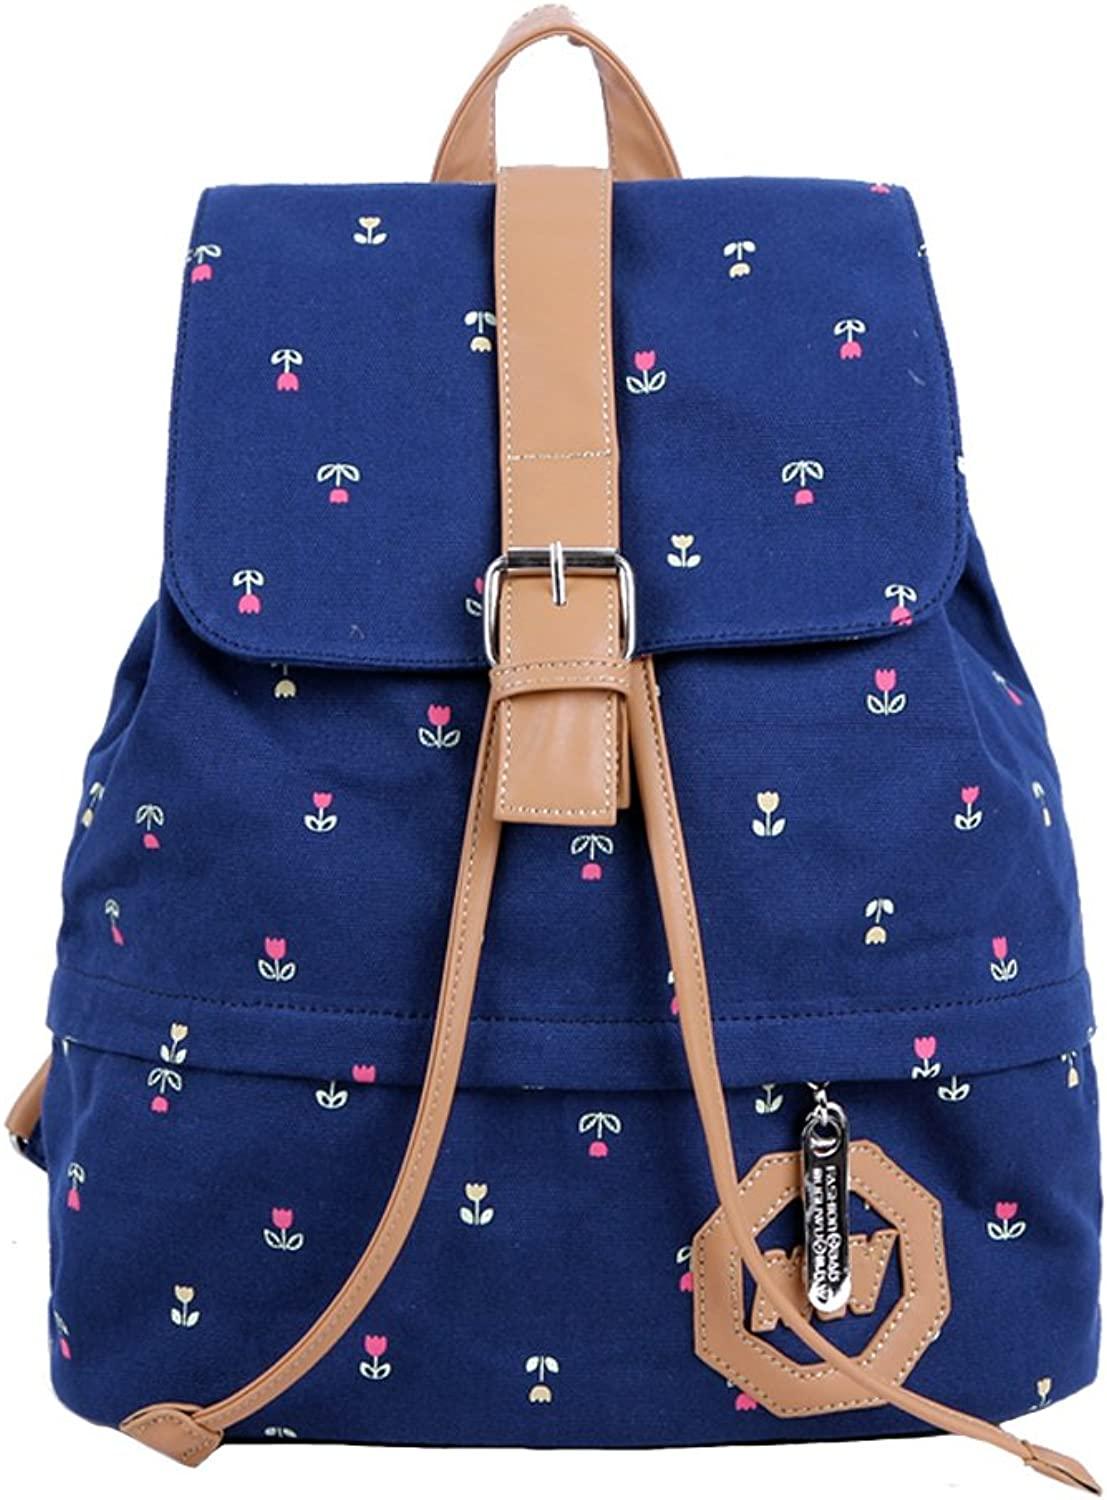 Girls Student Fashion Prints Canvas Travel Backpack bluee